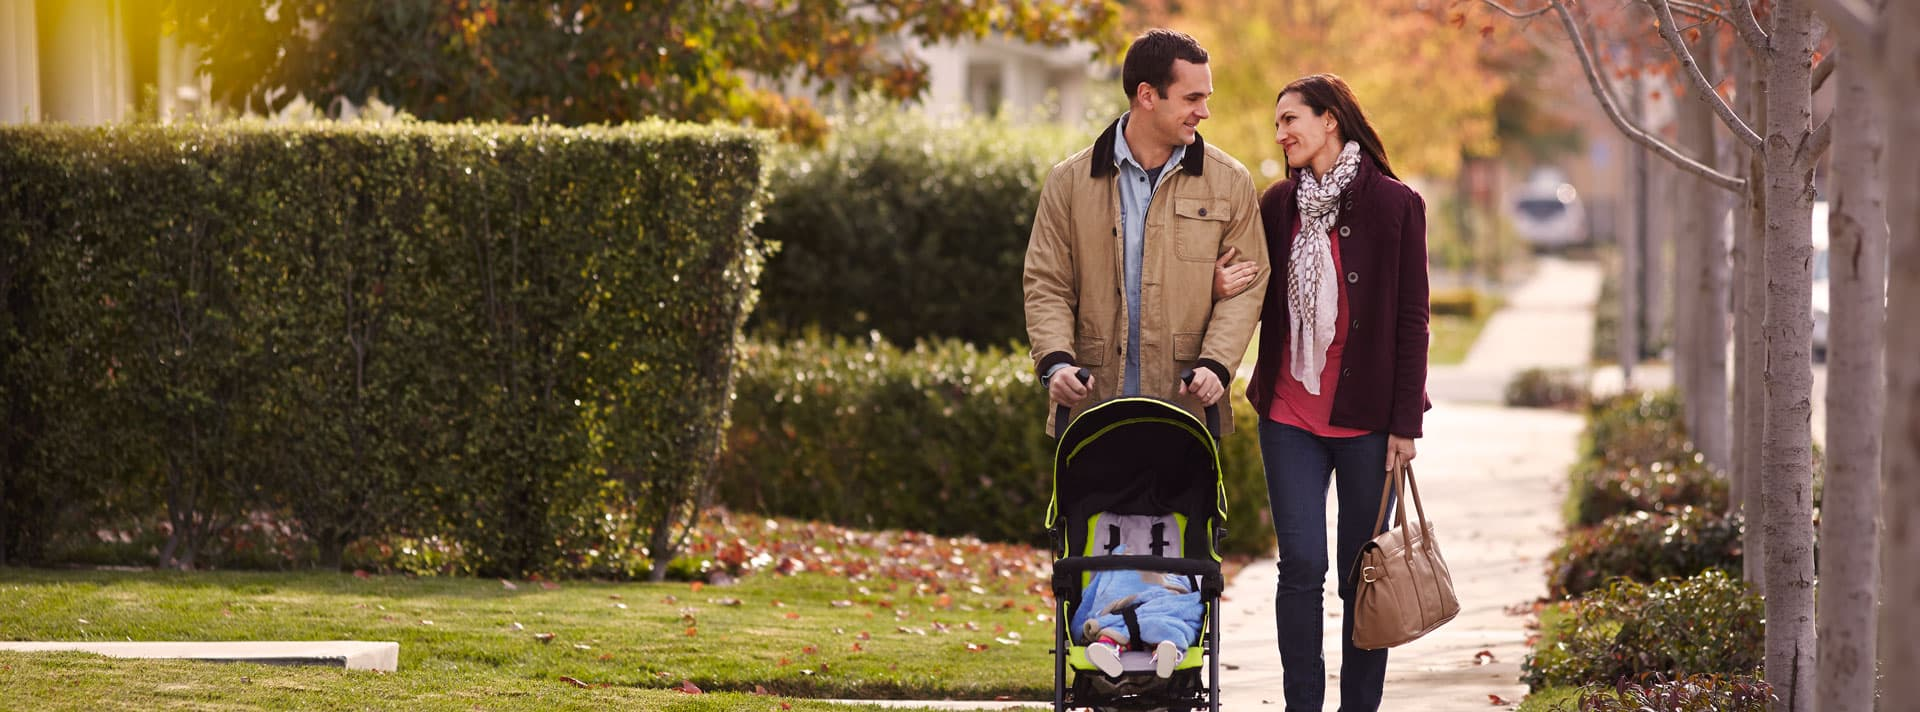 Couple walking with baby stroller